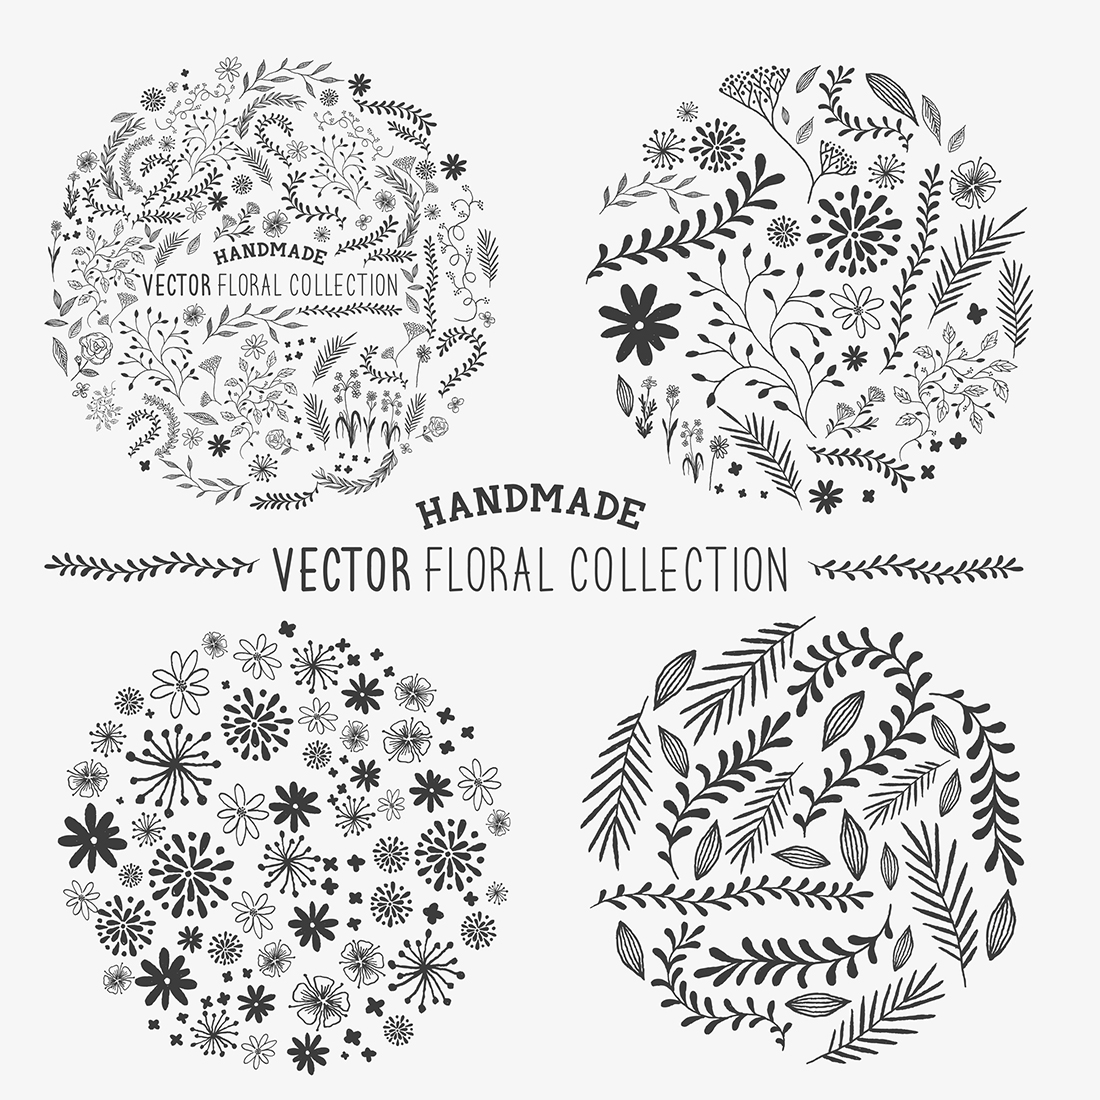 solarseven-vector-floral-collection